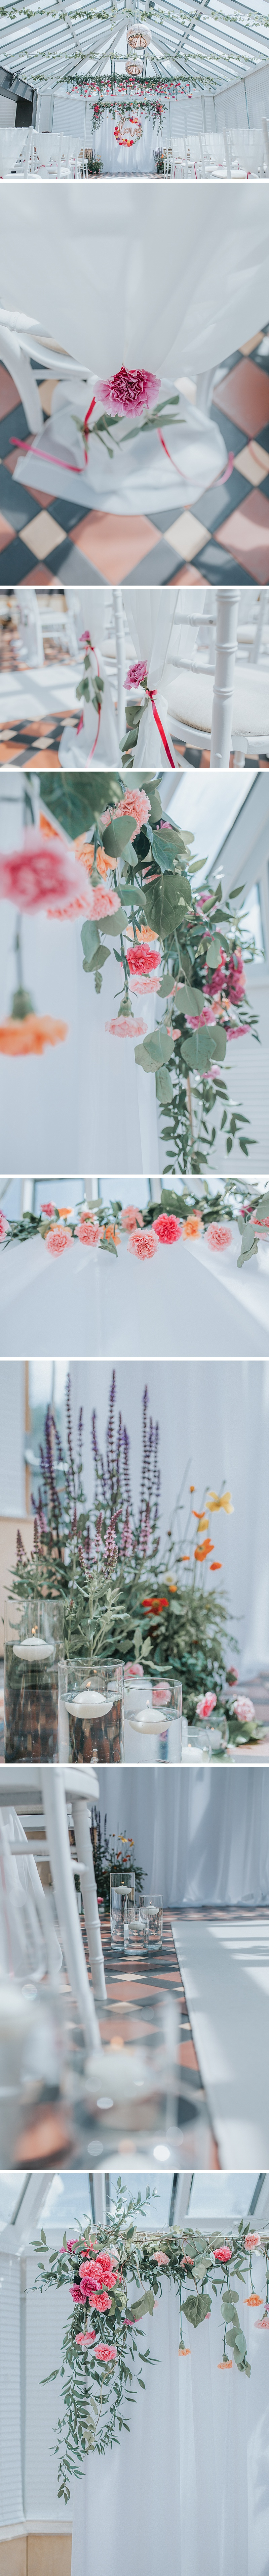 Flower and candle decor at the faversham wedding venue in Leeds